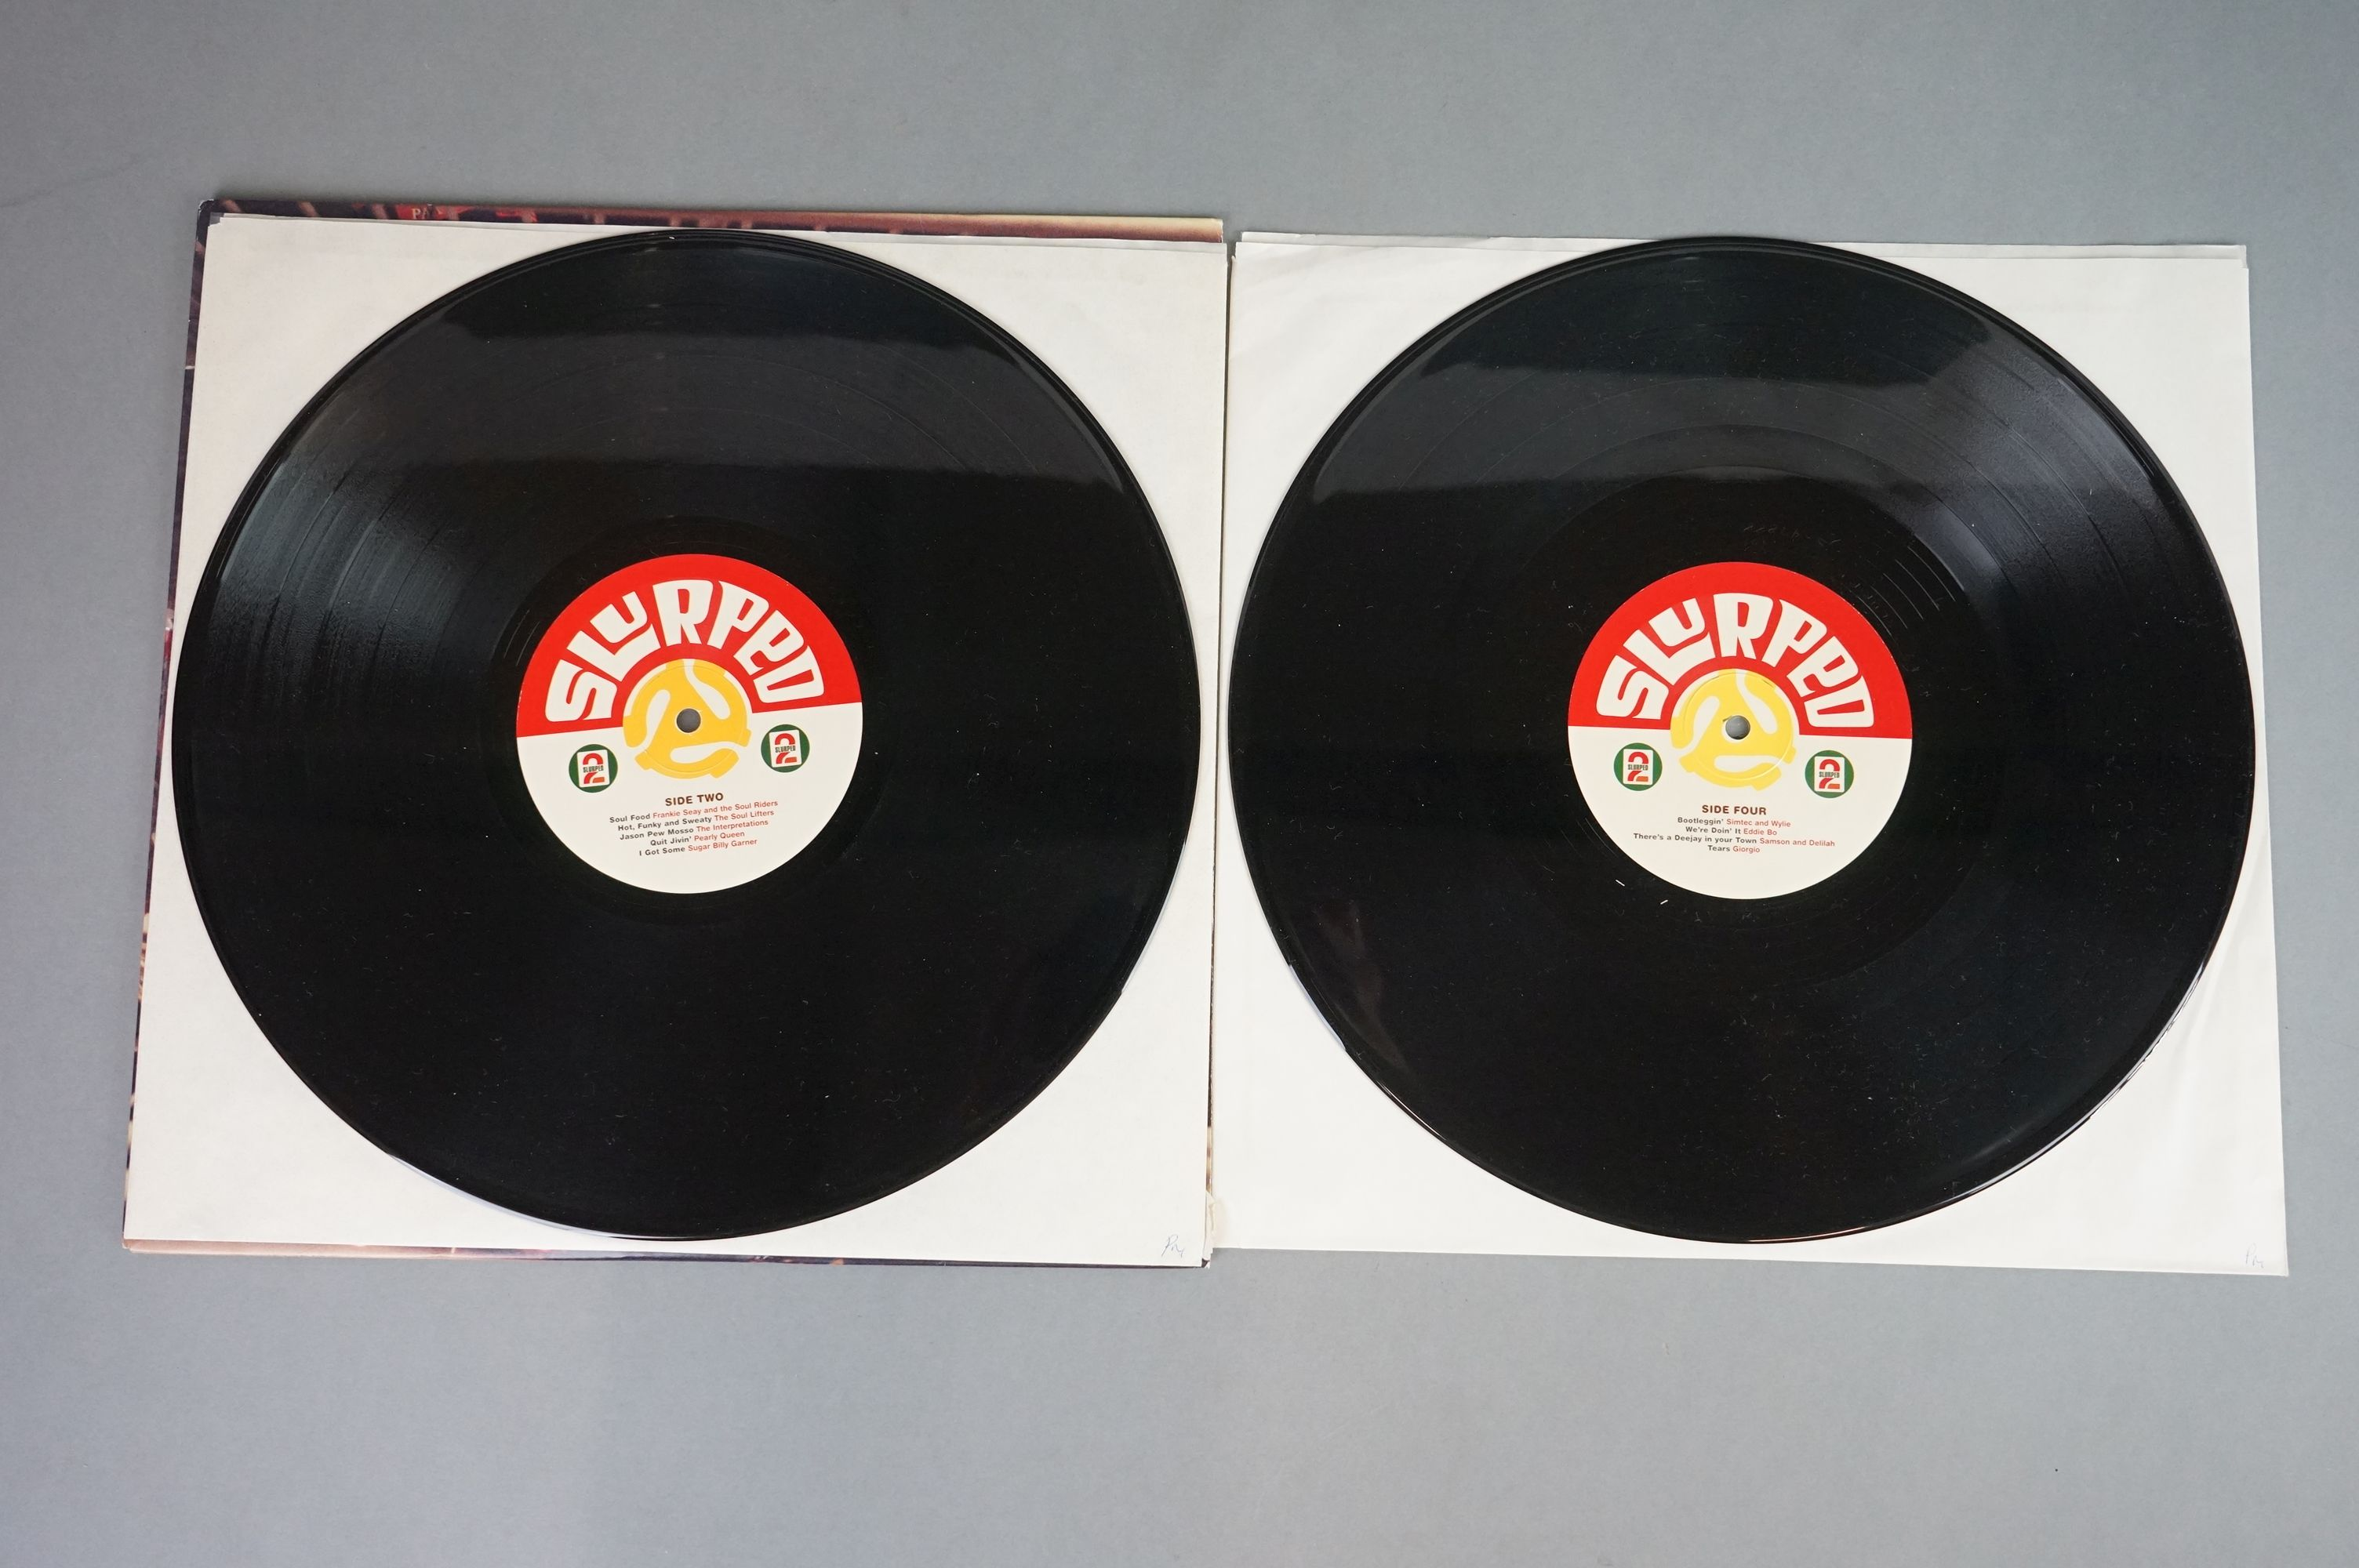 """Vinyl - Slurped Too! 2LP Compilation and 3 x Peanut Butter Wolf 12"""" singles to include Run The - Image 10 of 11"""